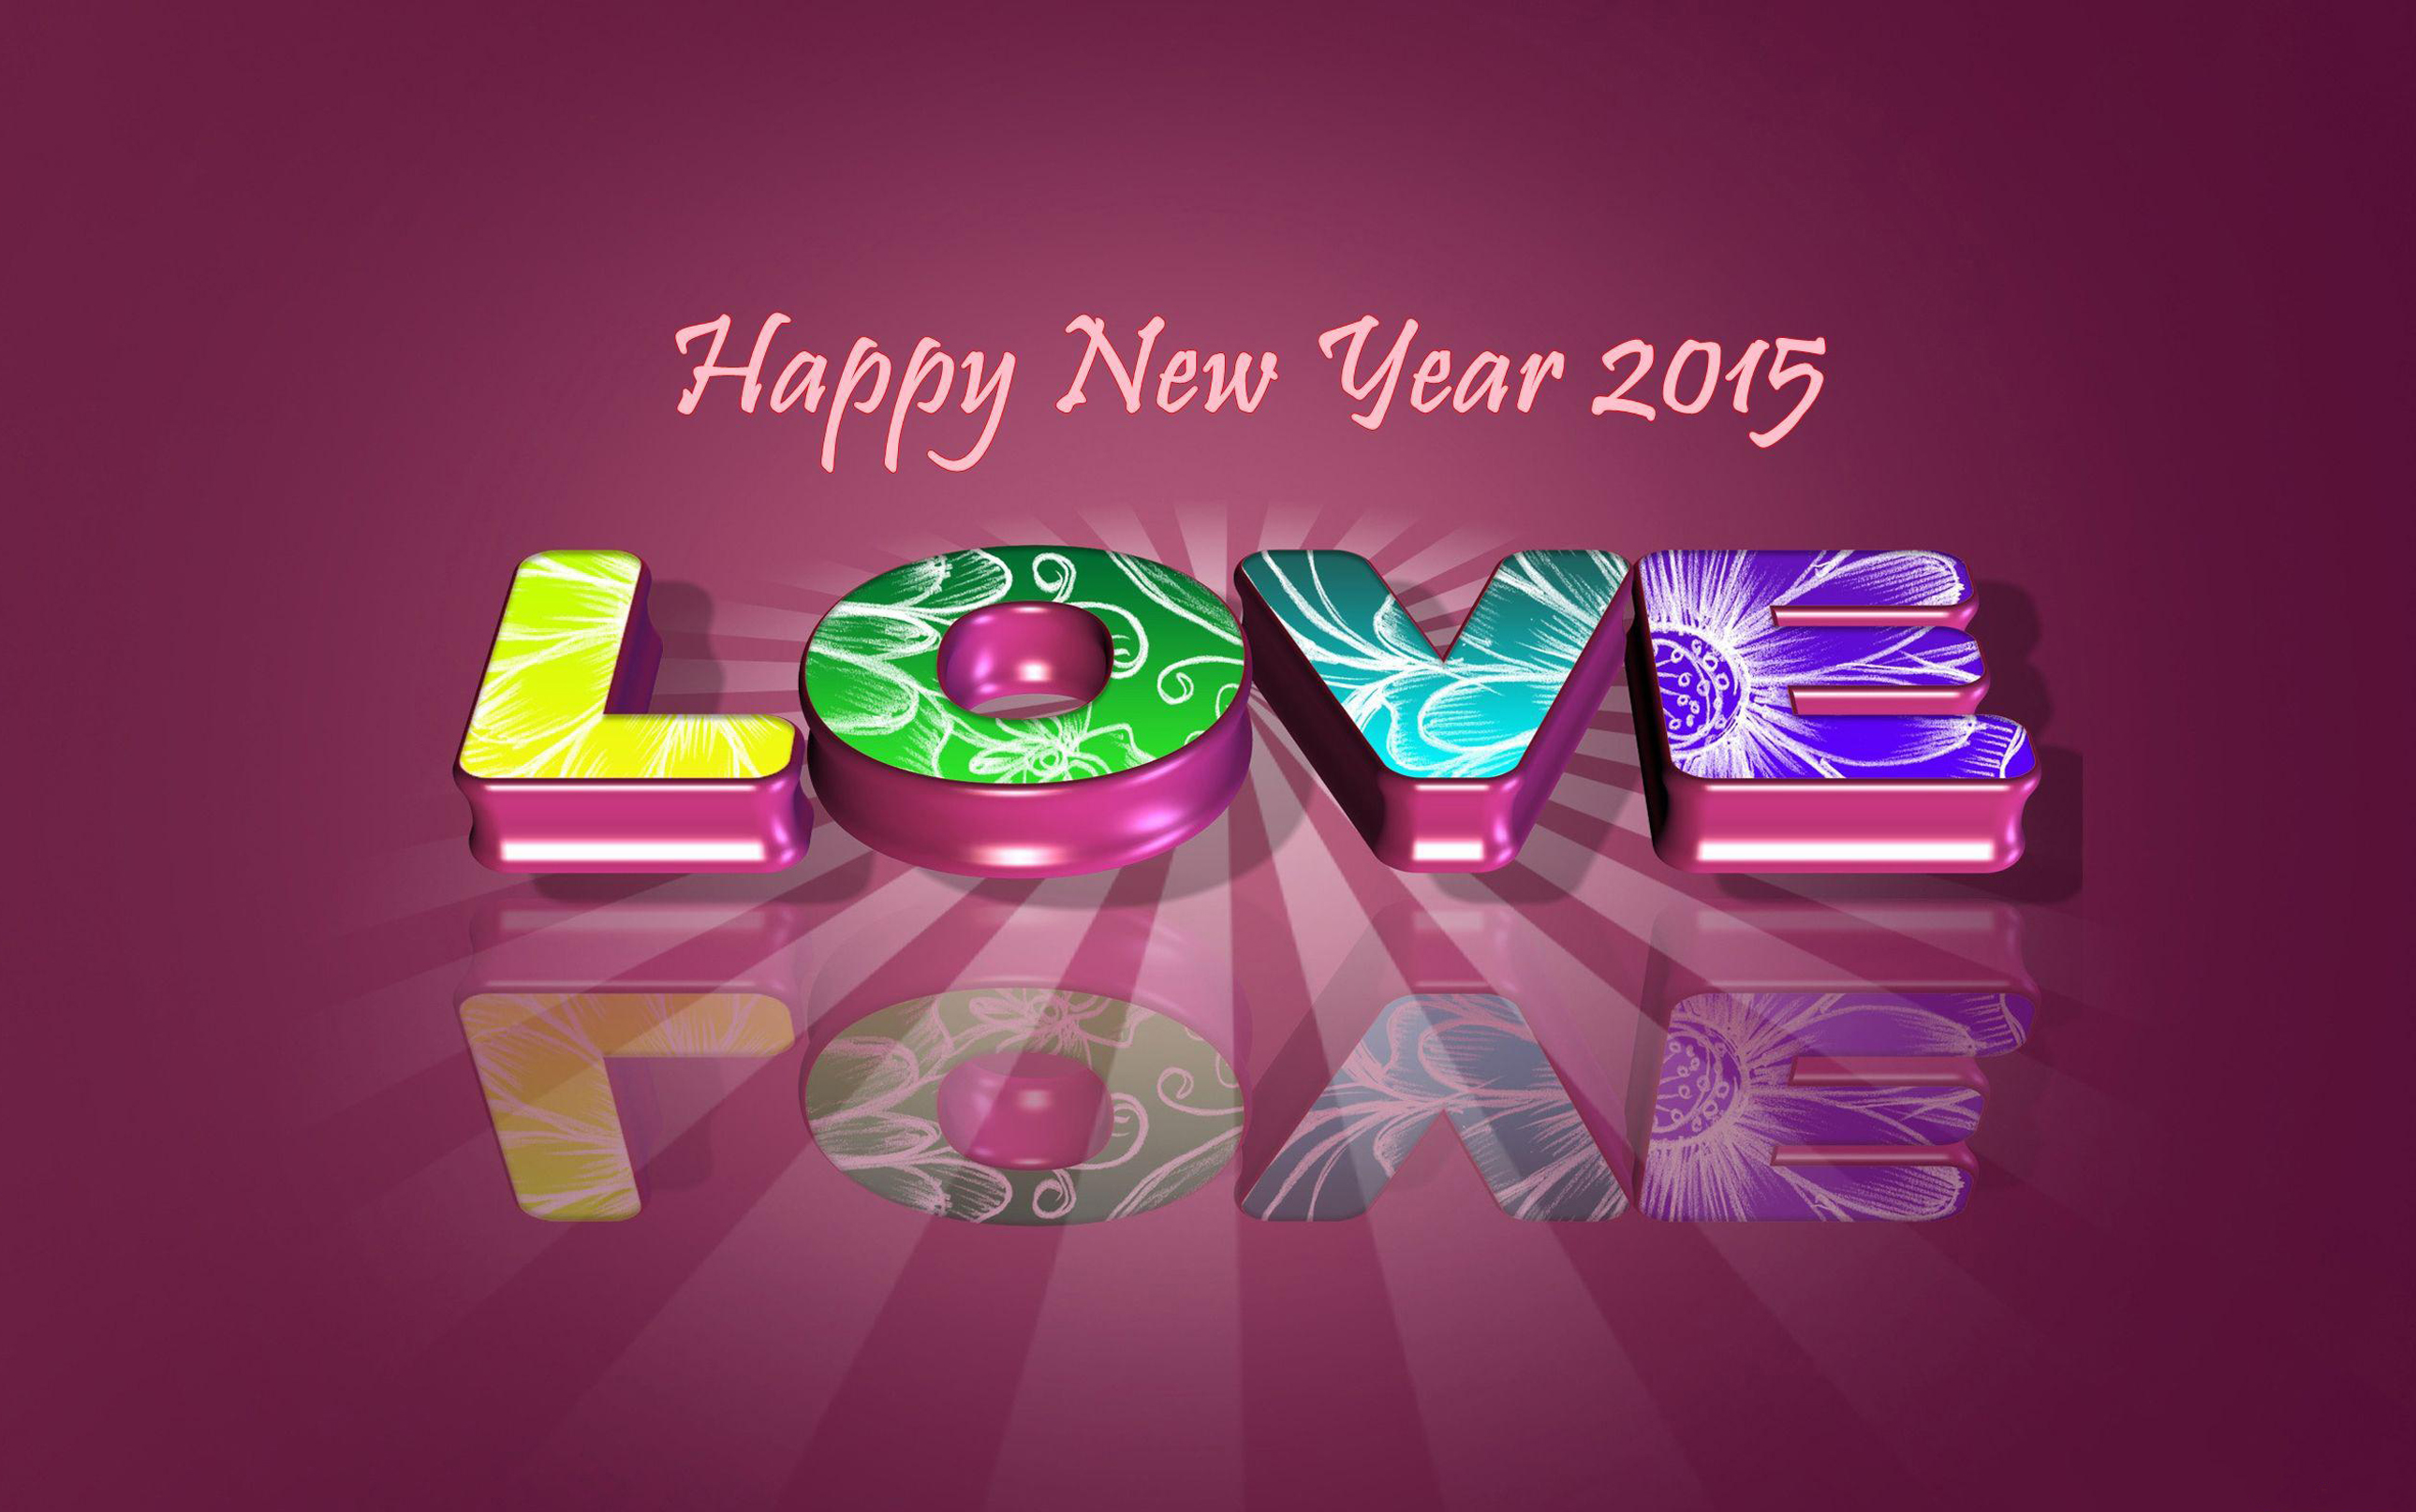 happy new year love wallpaper 2015 - wallpapersafari